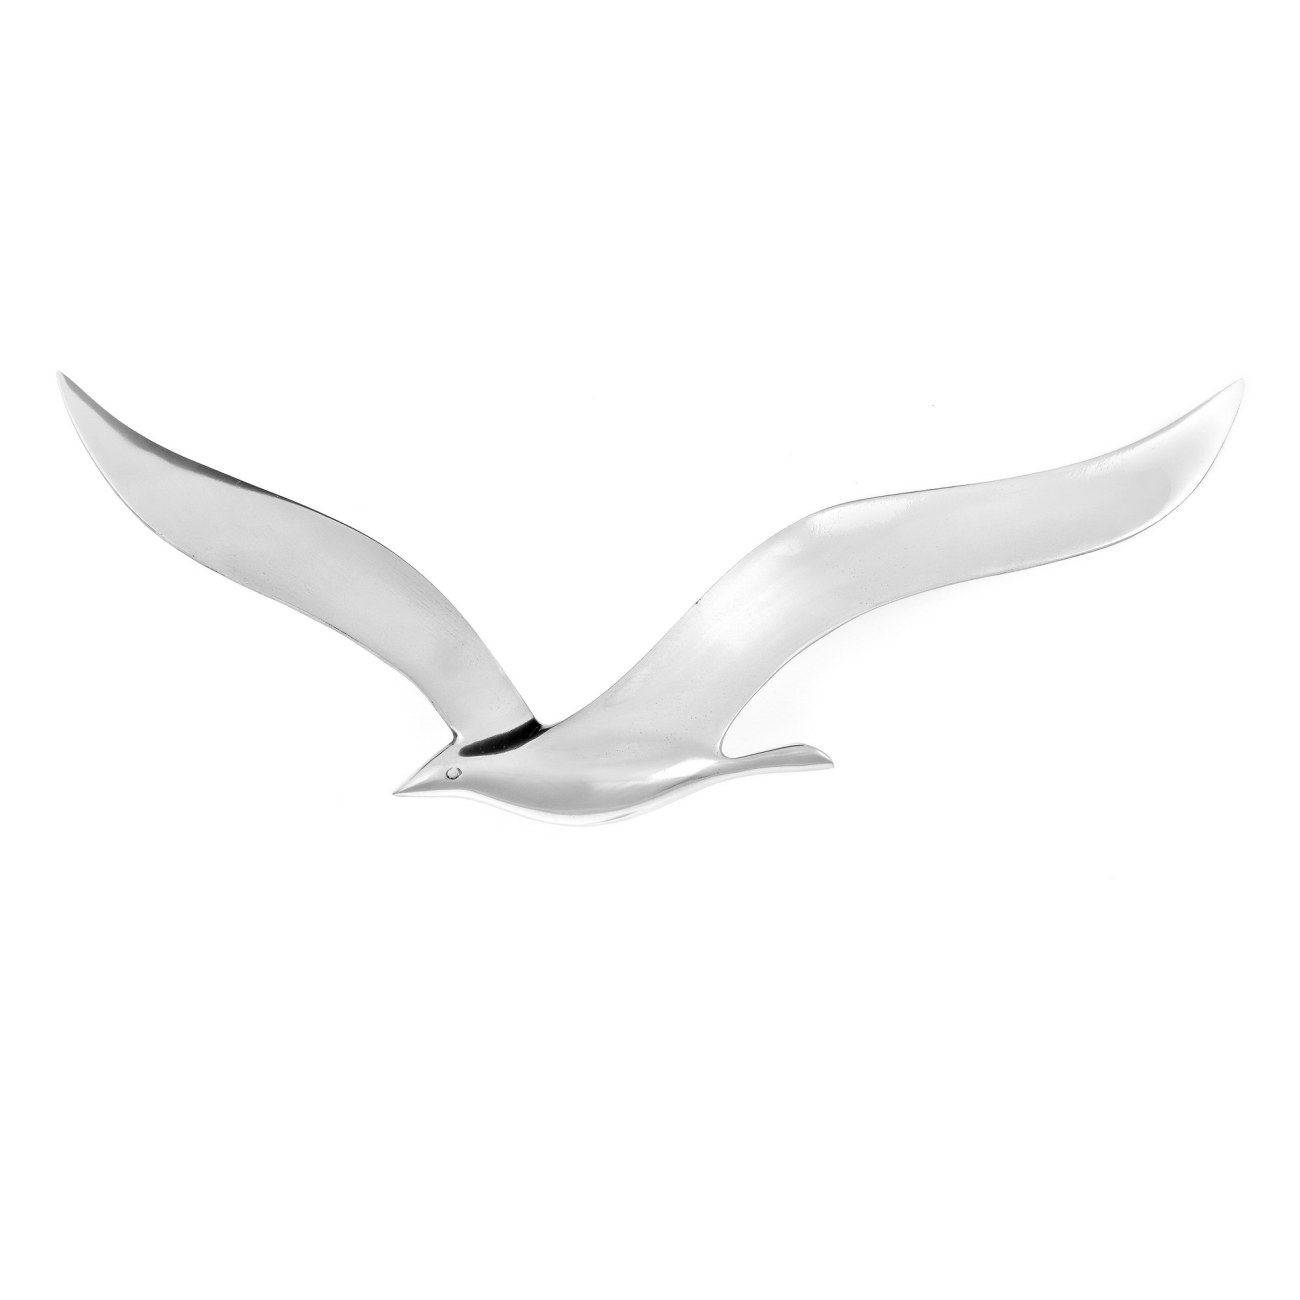 Flying Seagull Bird – Handmade Metal Wall Art Decor – Silver Intended For Most Recent Seagull Metal Wall Art (View 4 of 20)